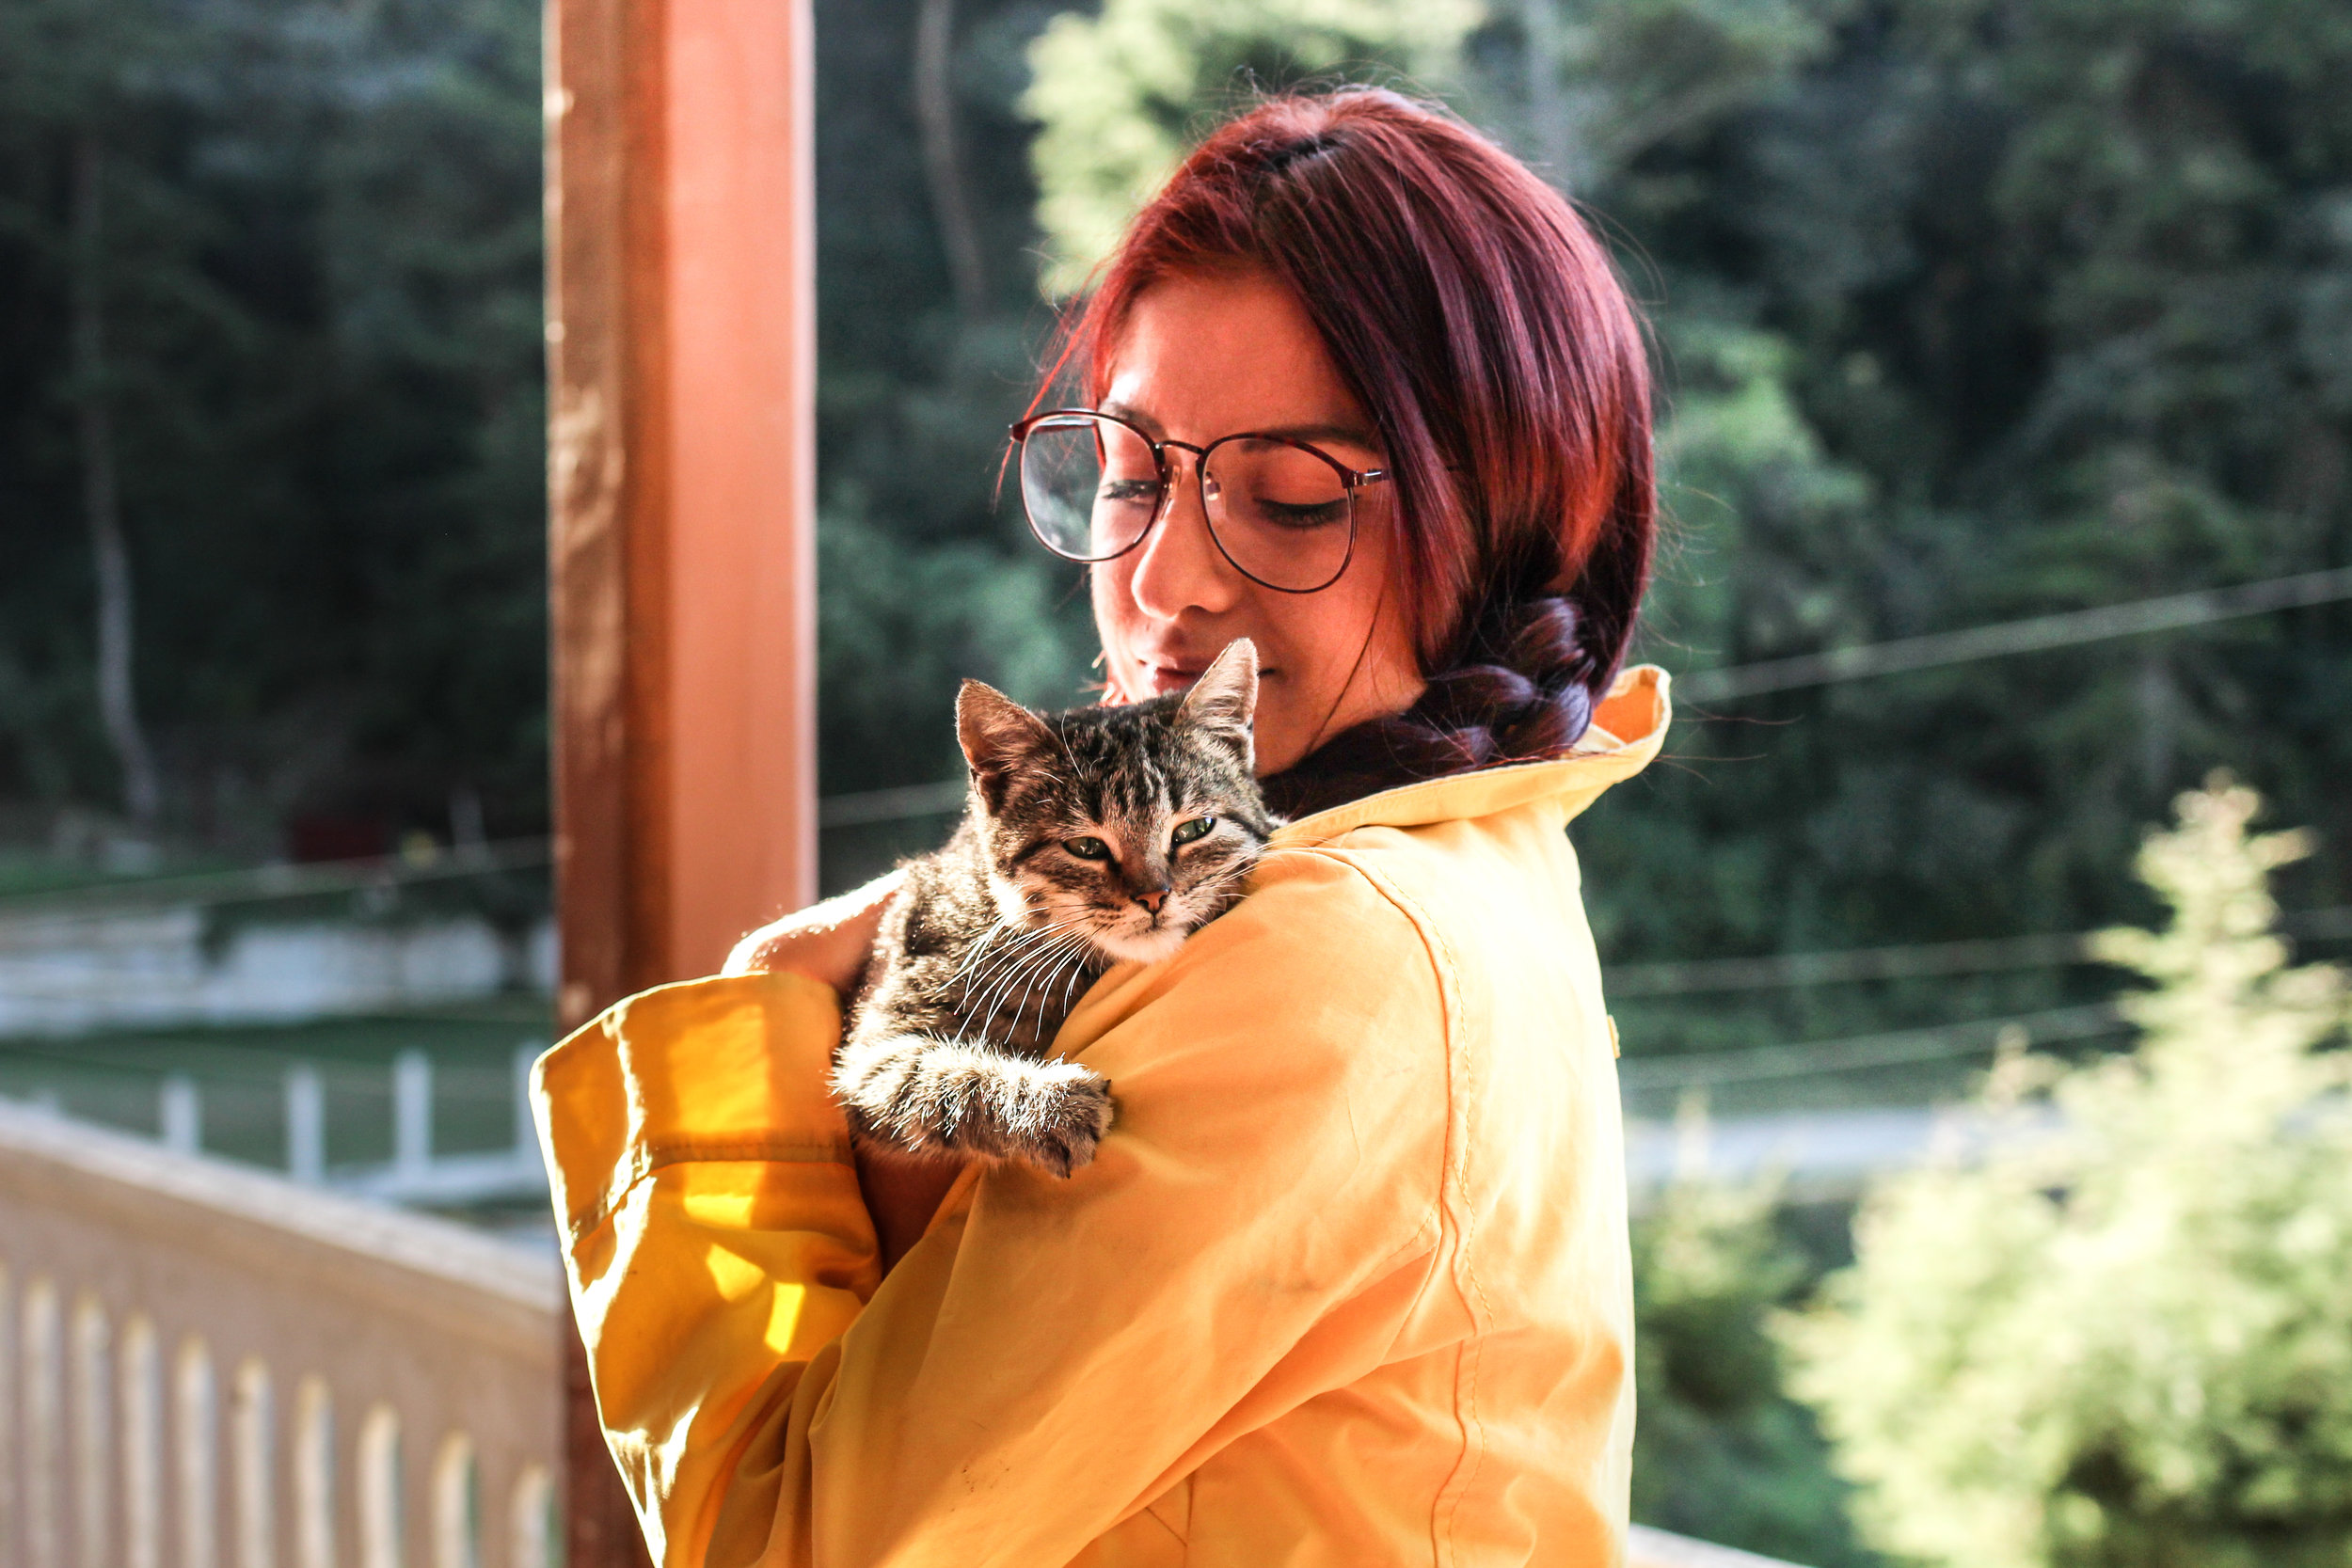 woman holding cat in hand